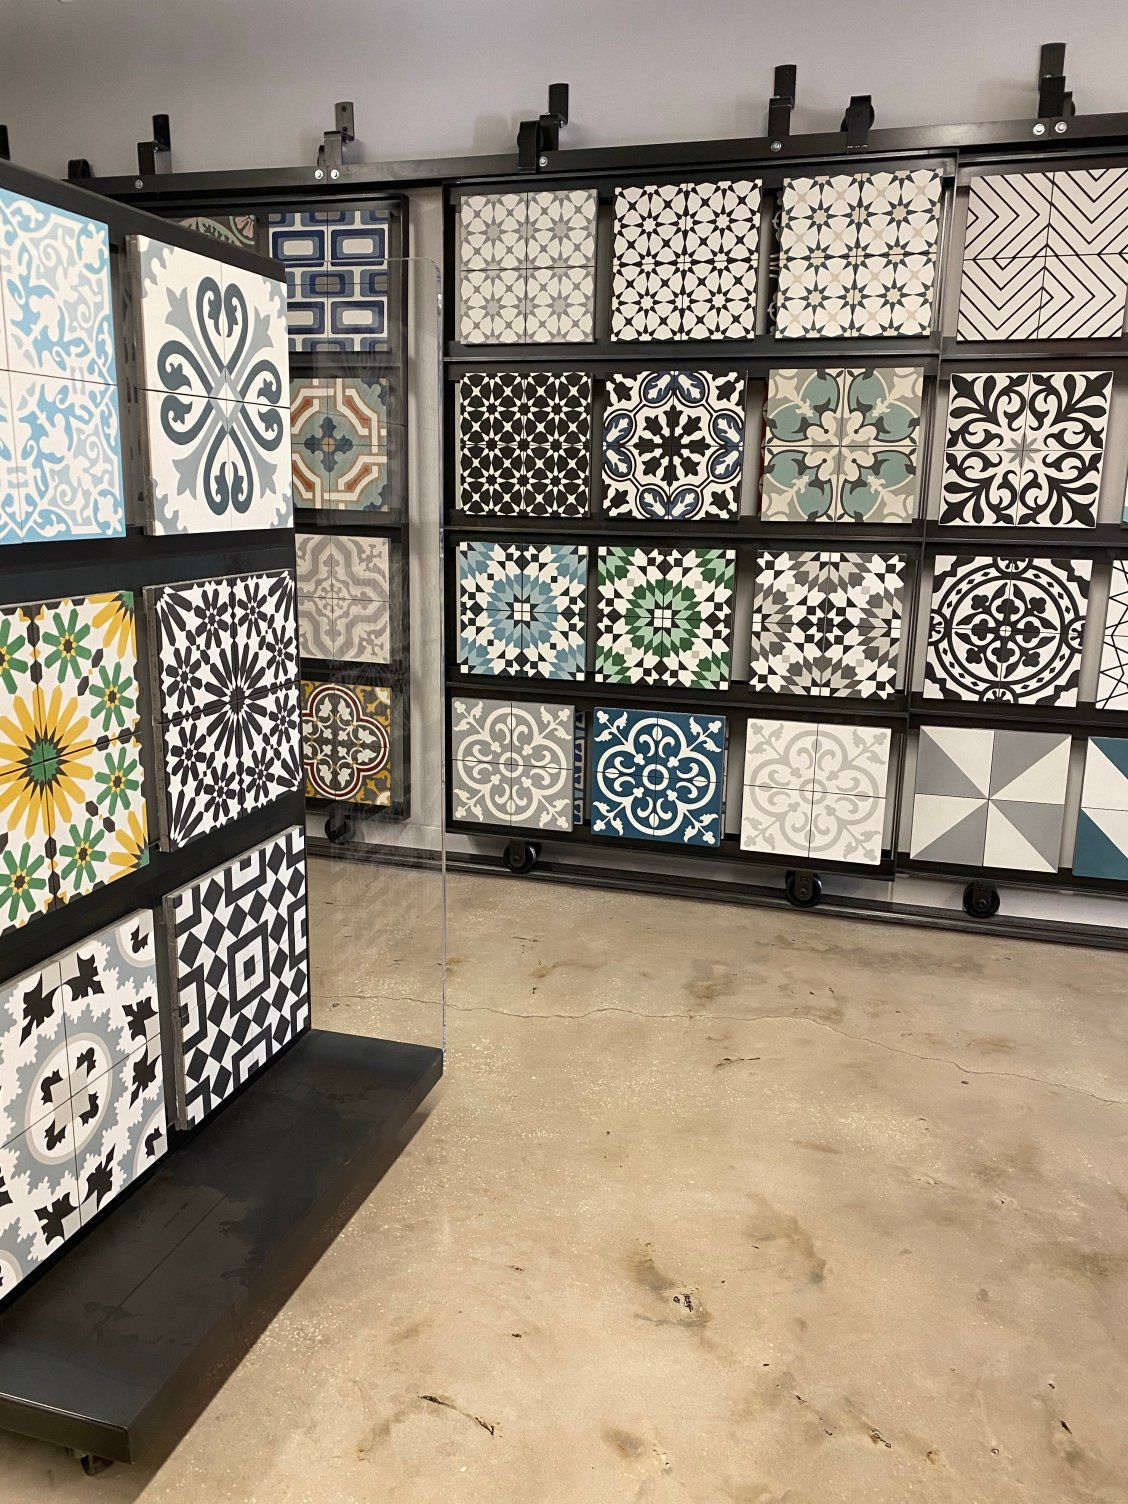 Cement tile shop tampa showroom in 2021 cement tile